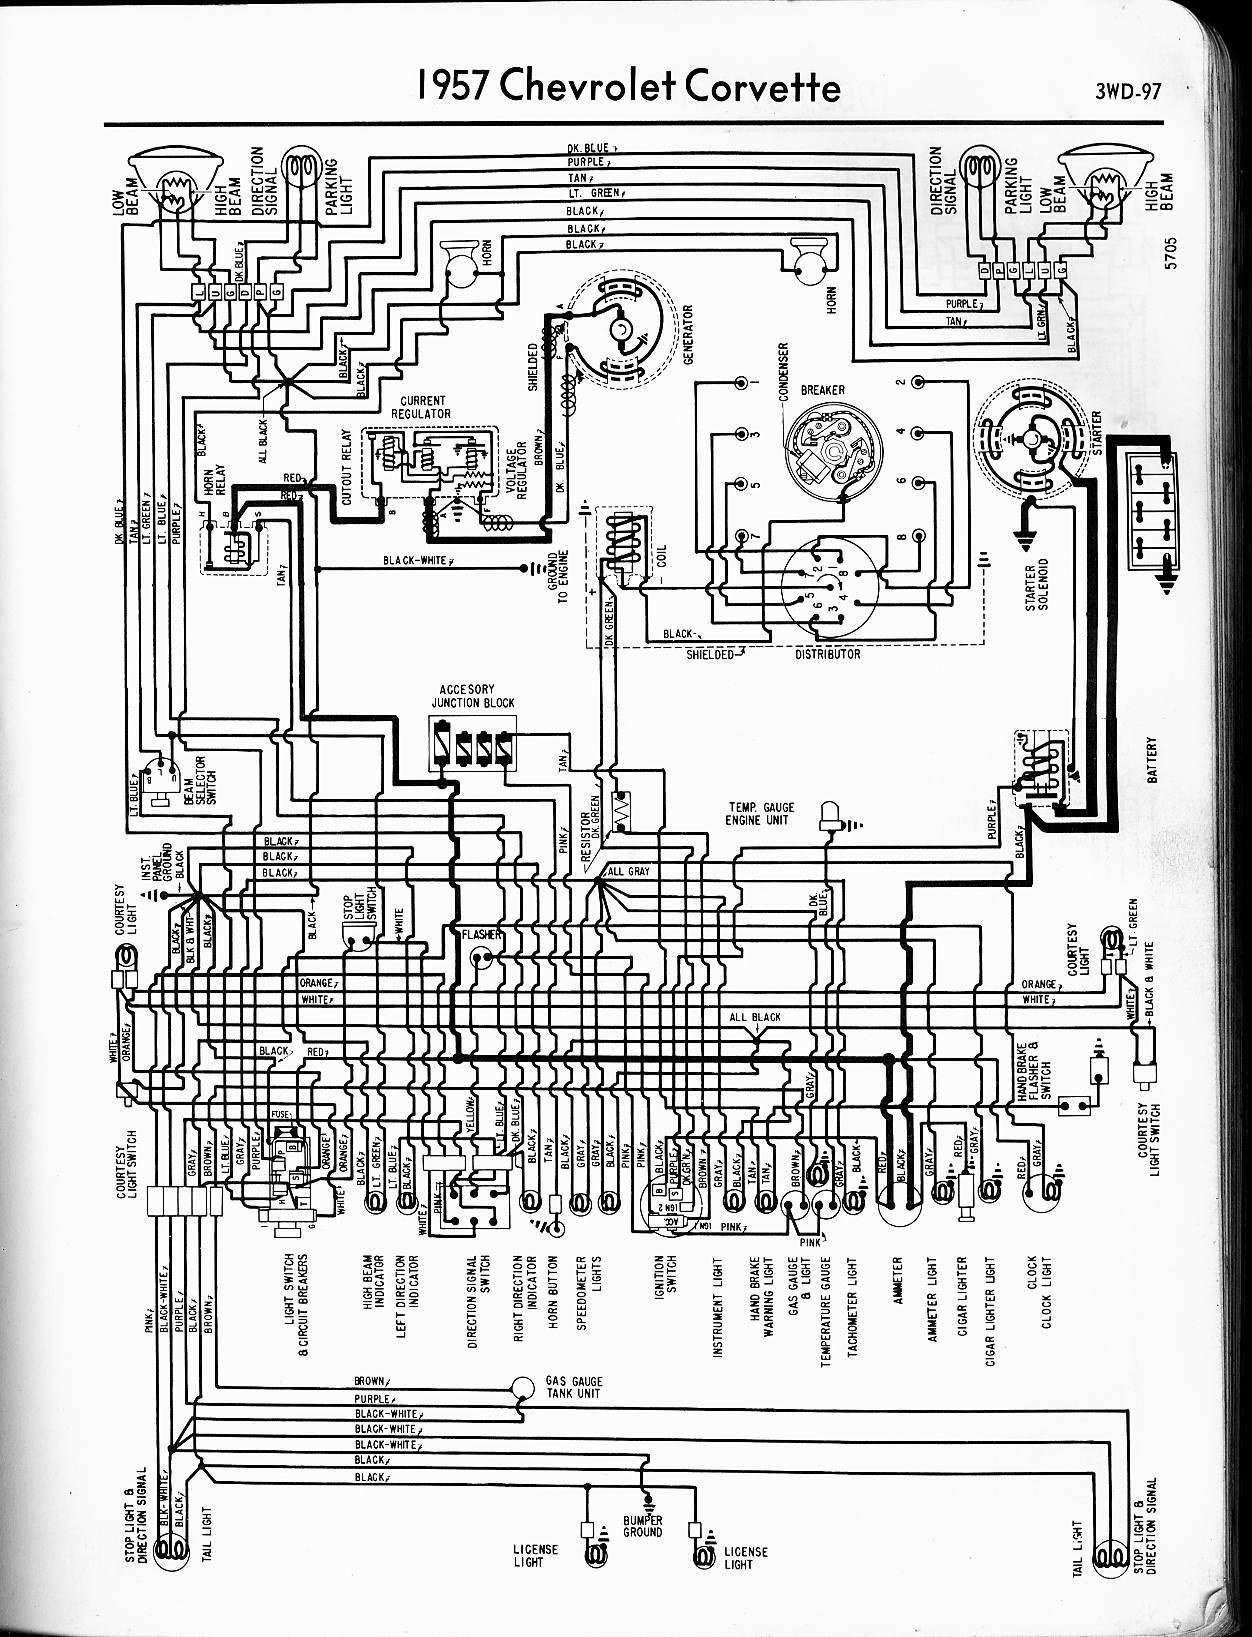 1957 chevy wiring diagram 1957 image wiring diagram 1957 chevy alternator wiring pontiac wiring diagram 1966 on 1957 chevy wiring diagram